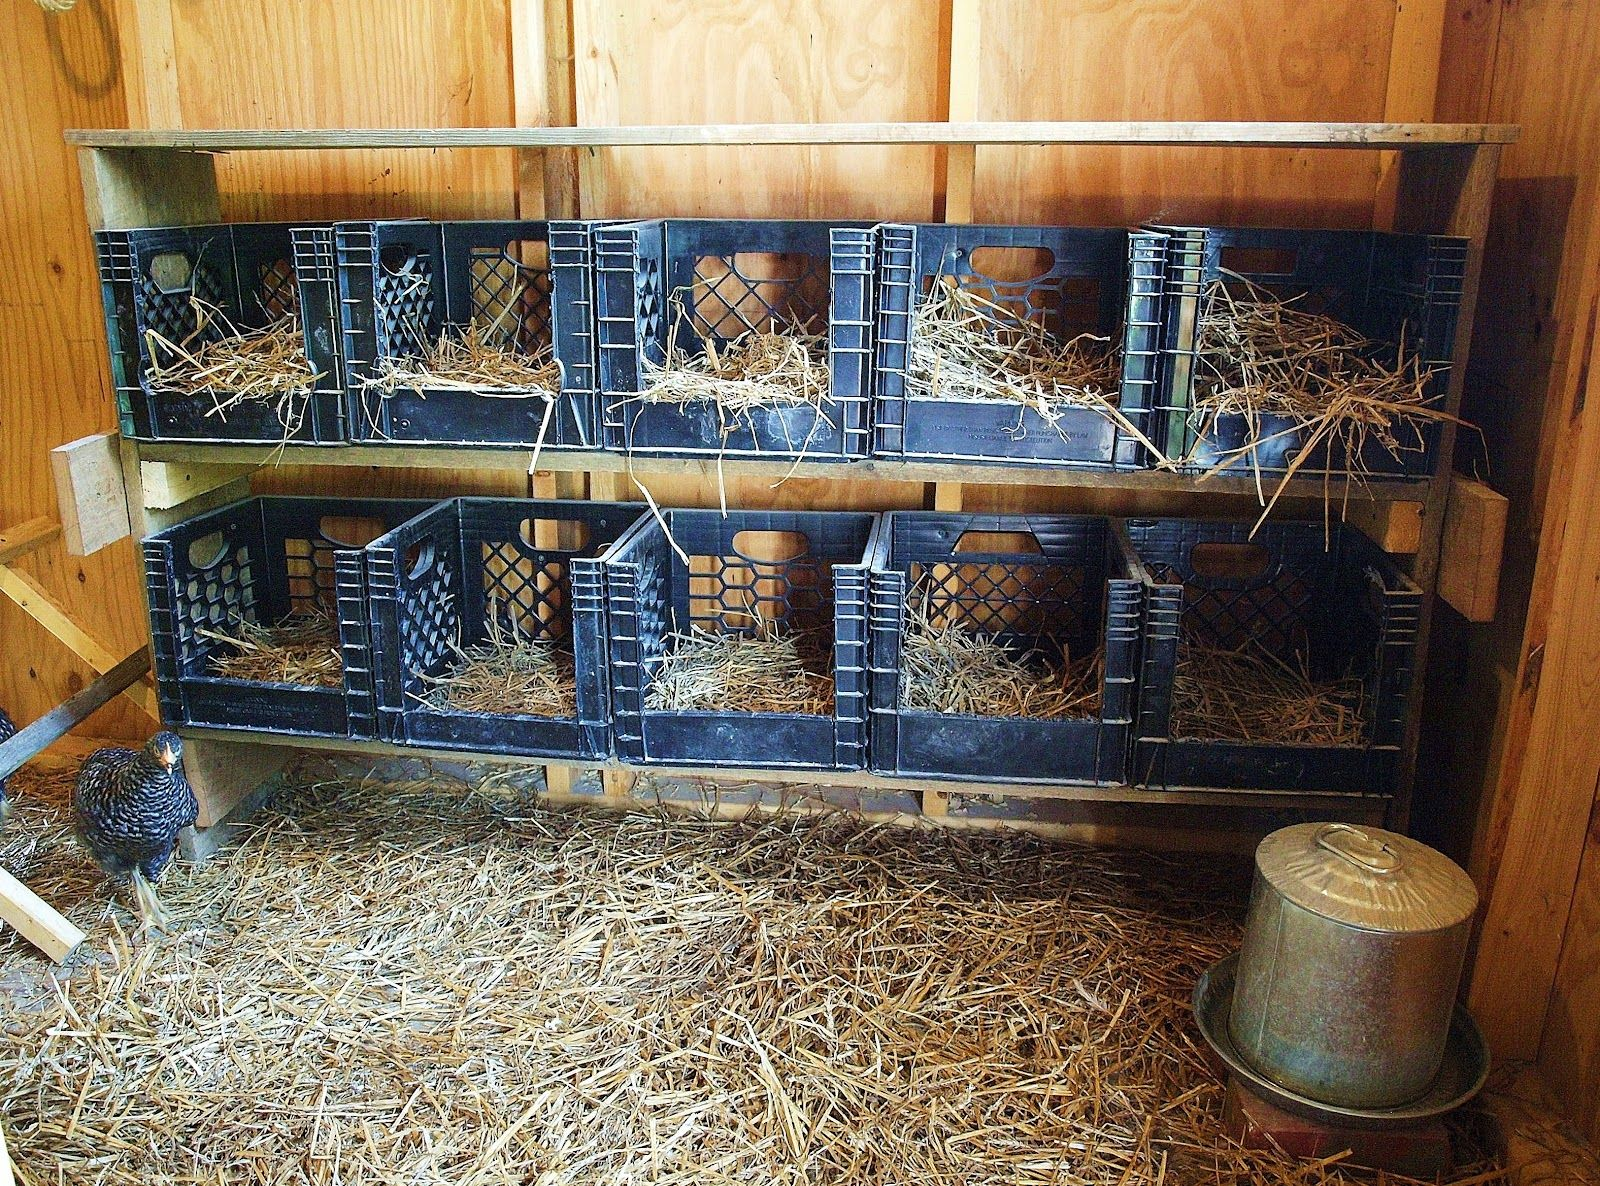 43+ What to put in chicken nesting boxes ideas in 2021